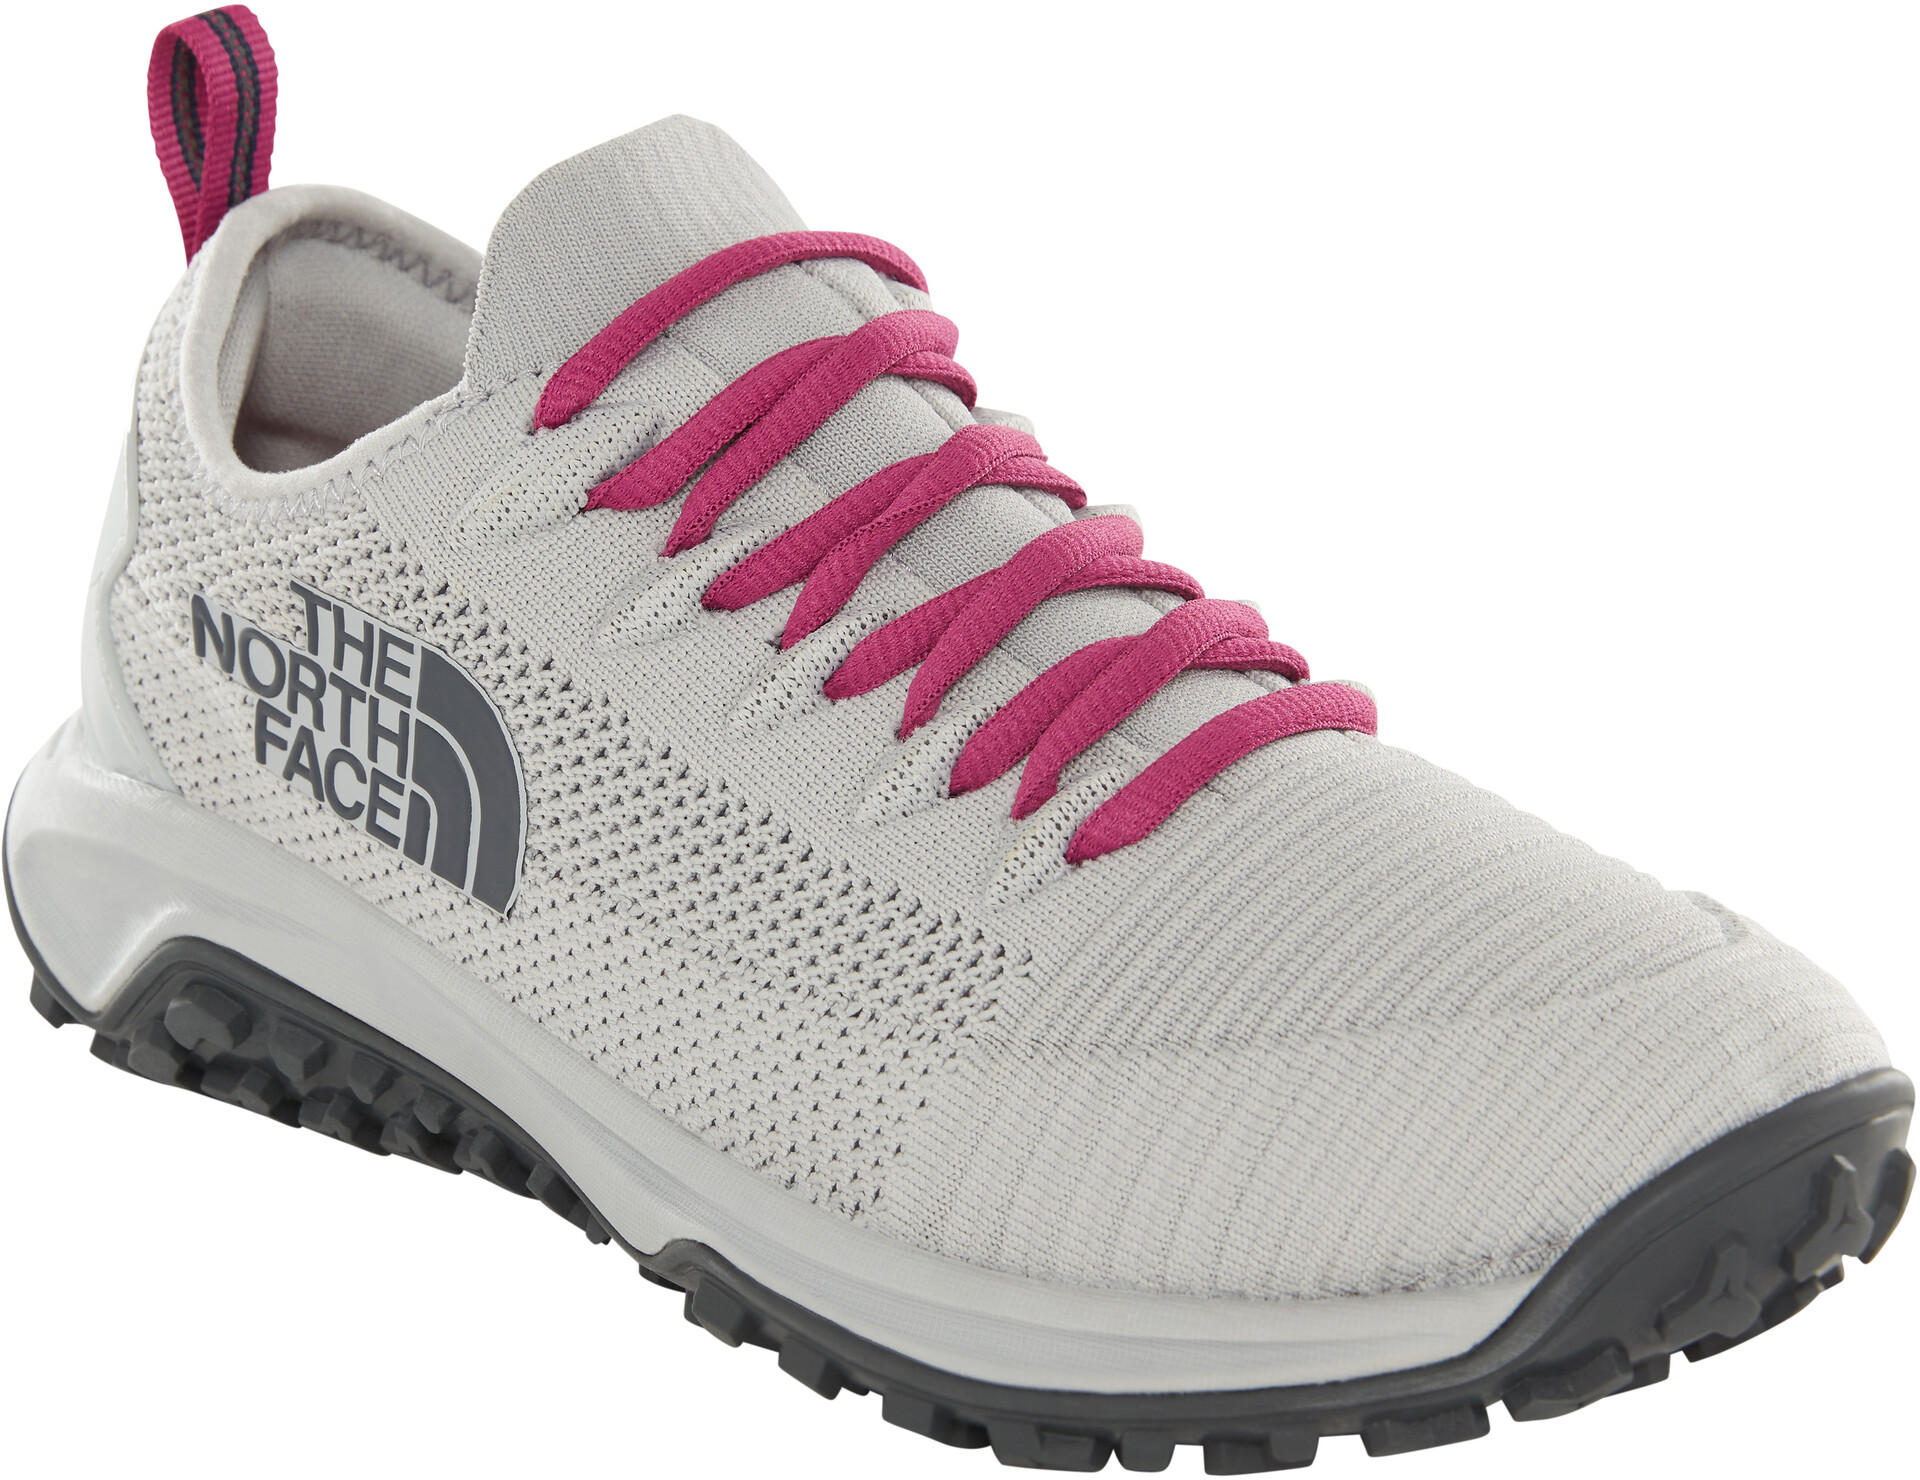 The North Face Truxel Shoes Women high